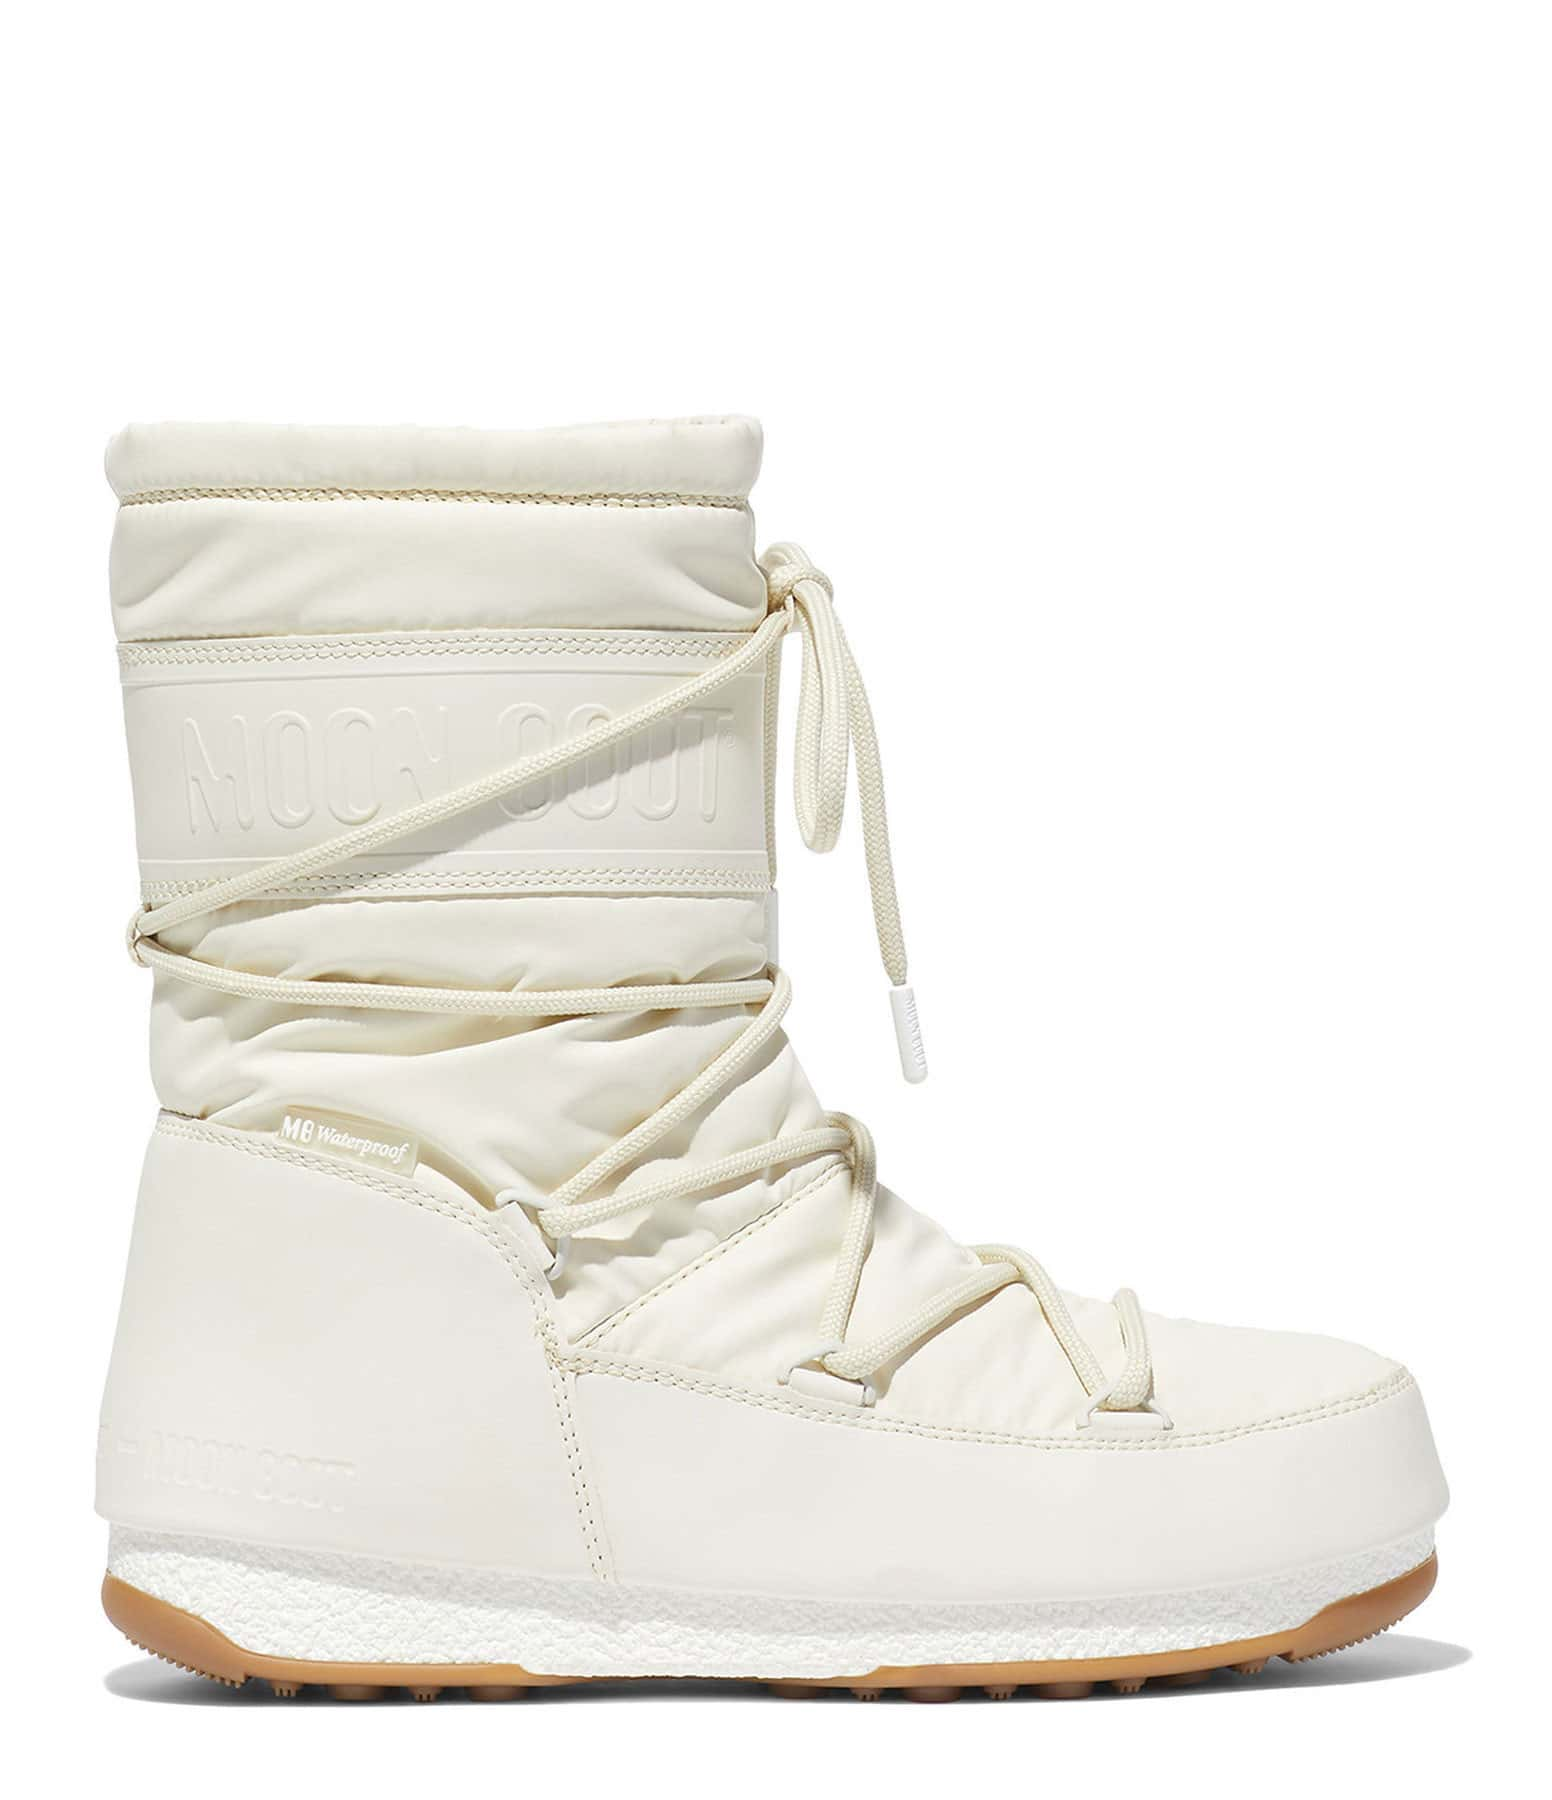 MOON BOOT - Moon Boot Mid Rubber Crème